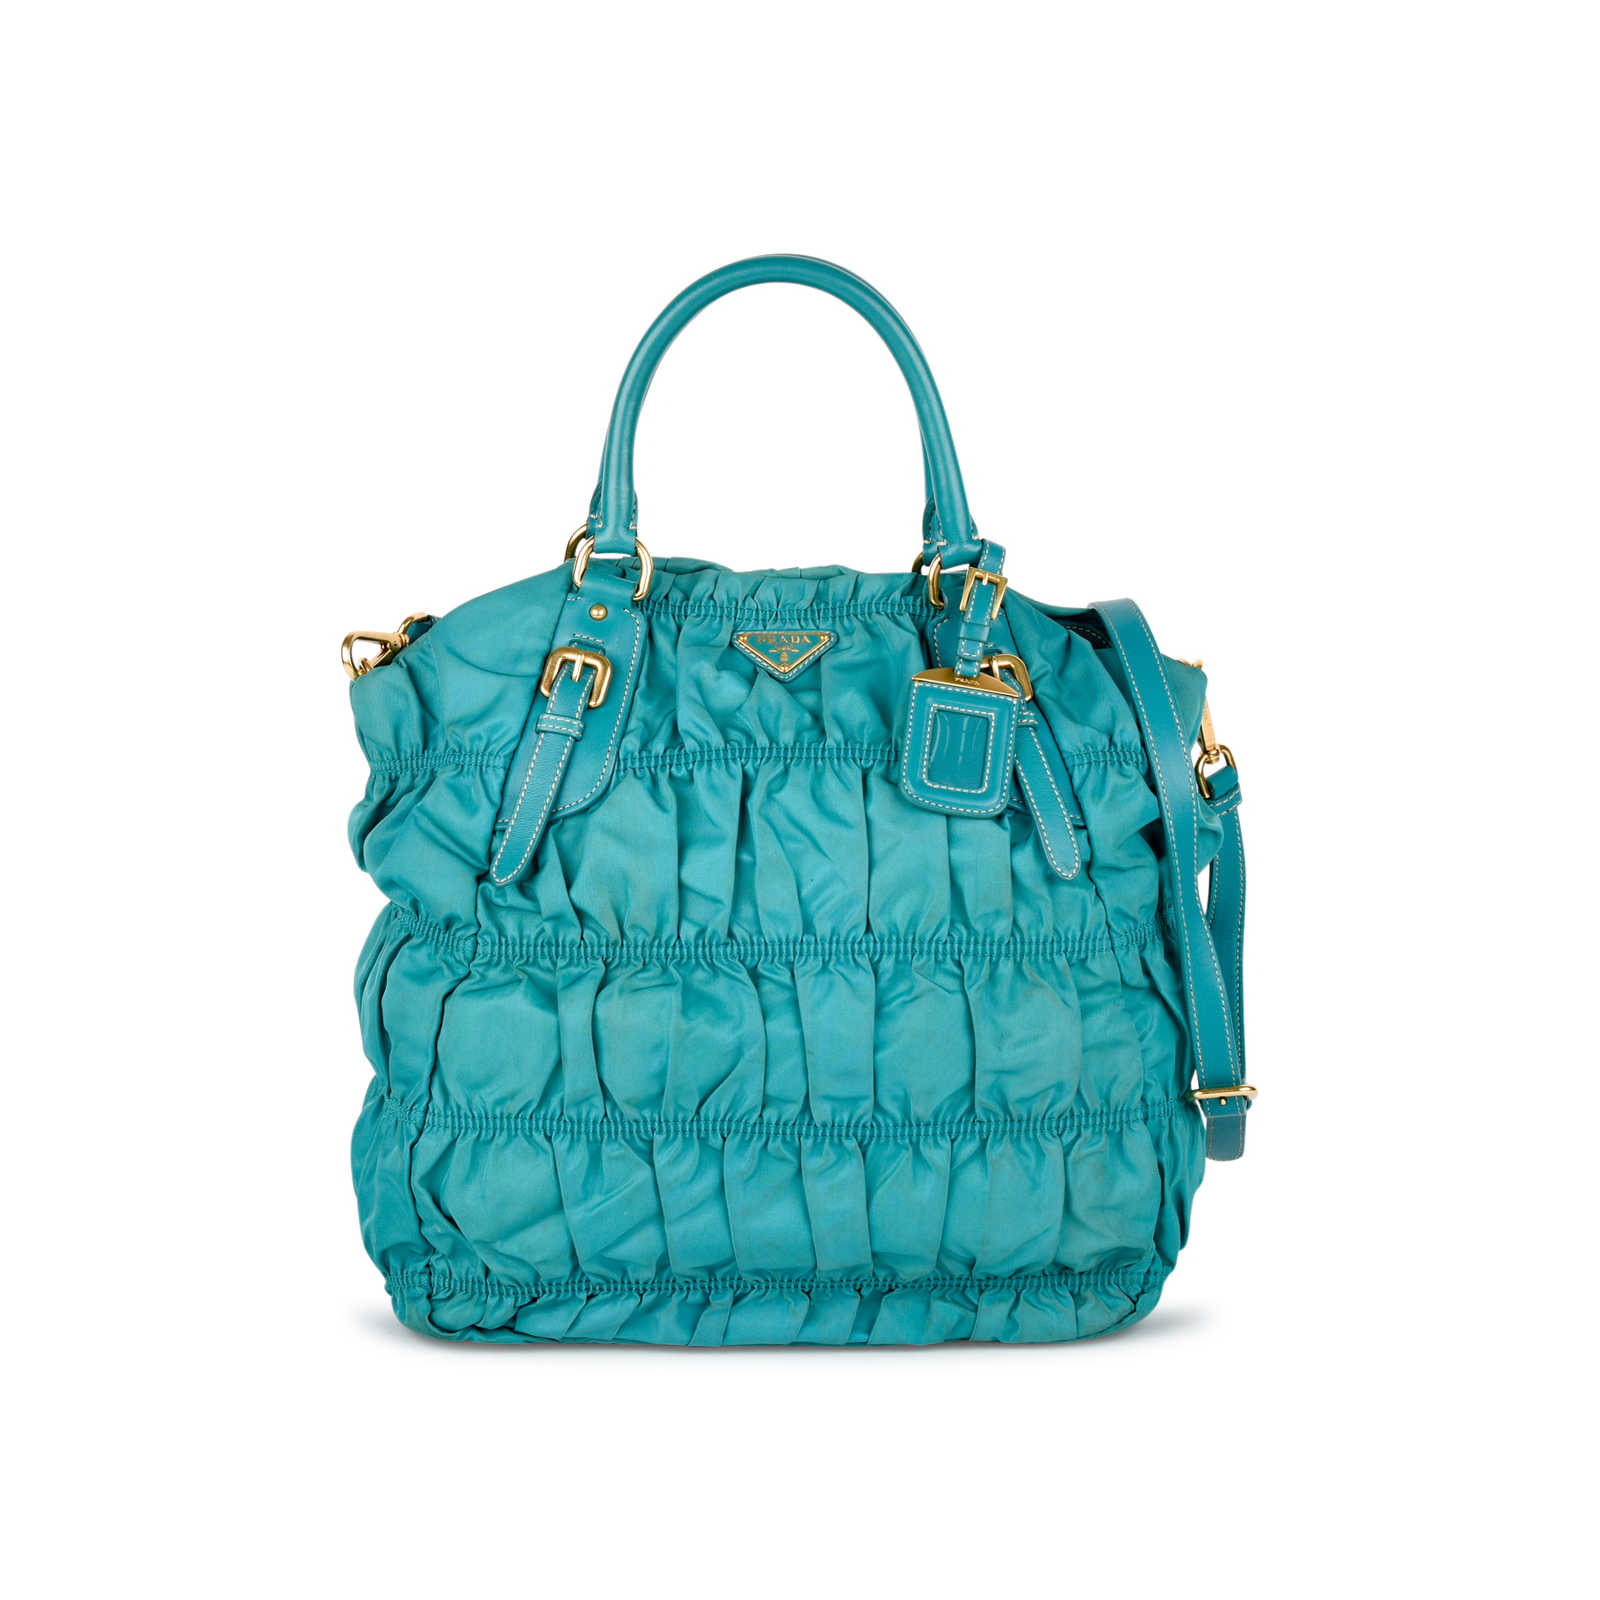 579201f5591bd8 Authentic Second Hand Prada Tessuto Gaufre Tote Bag (PSS-434-00002) ...